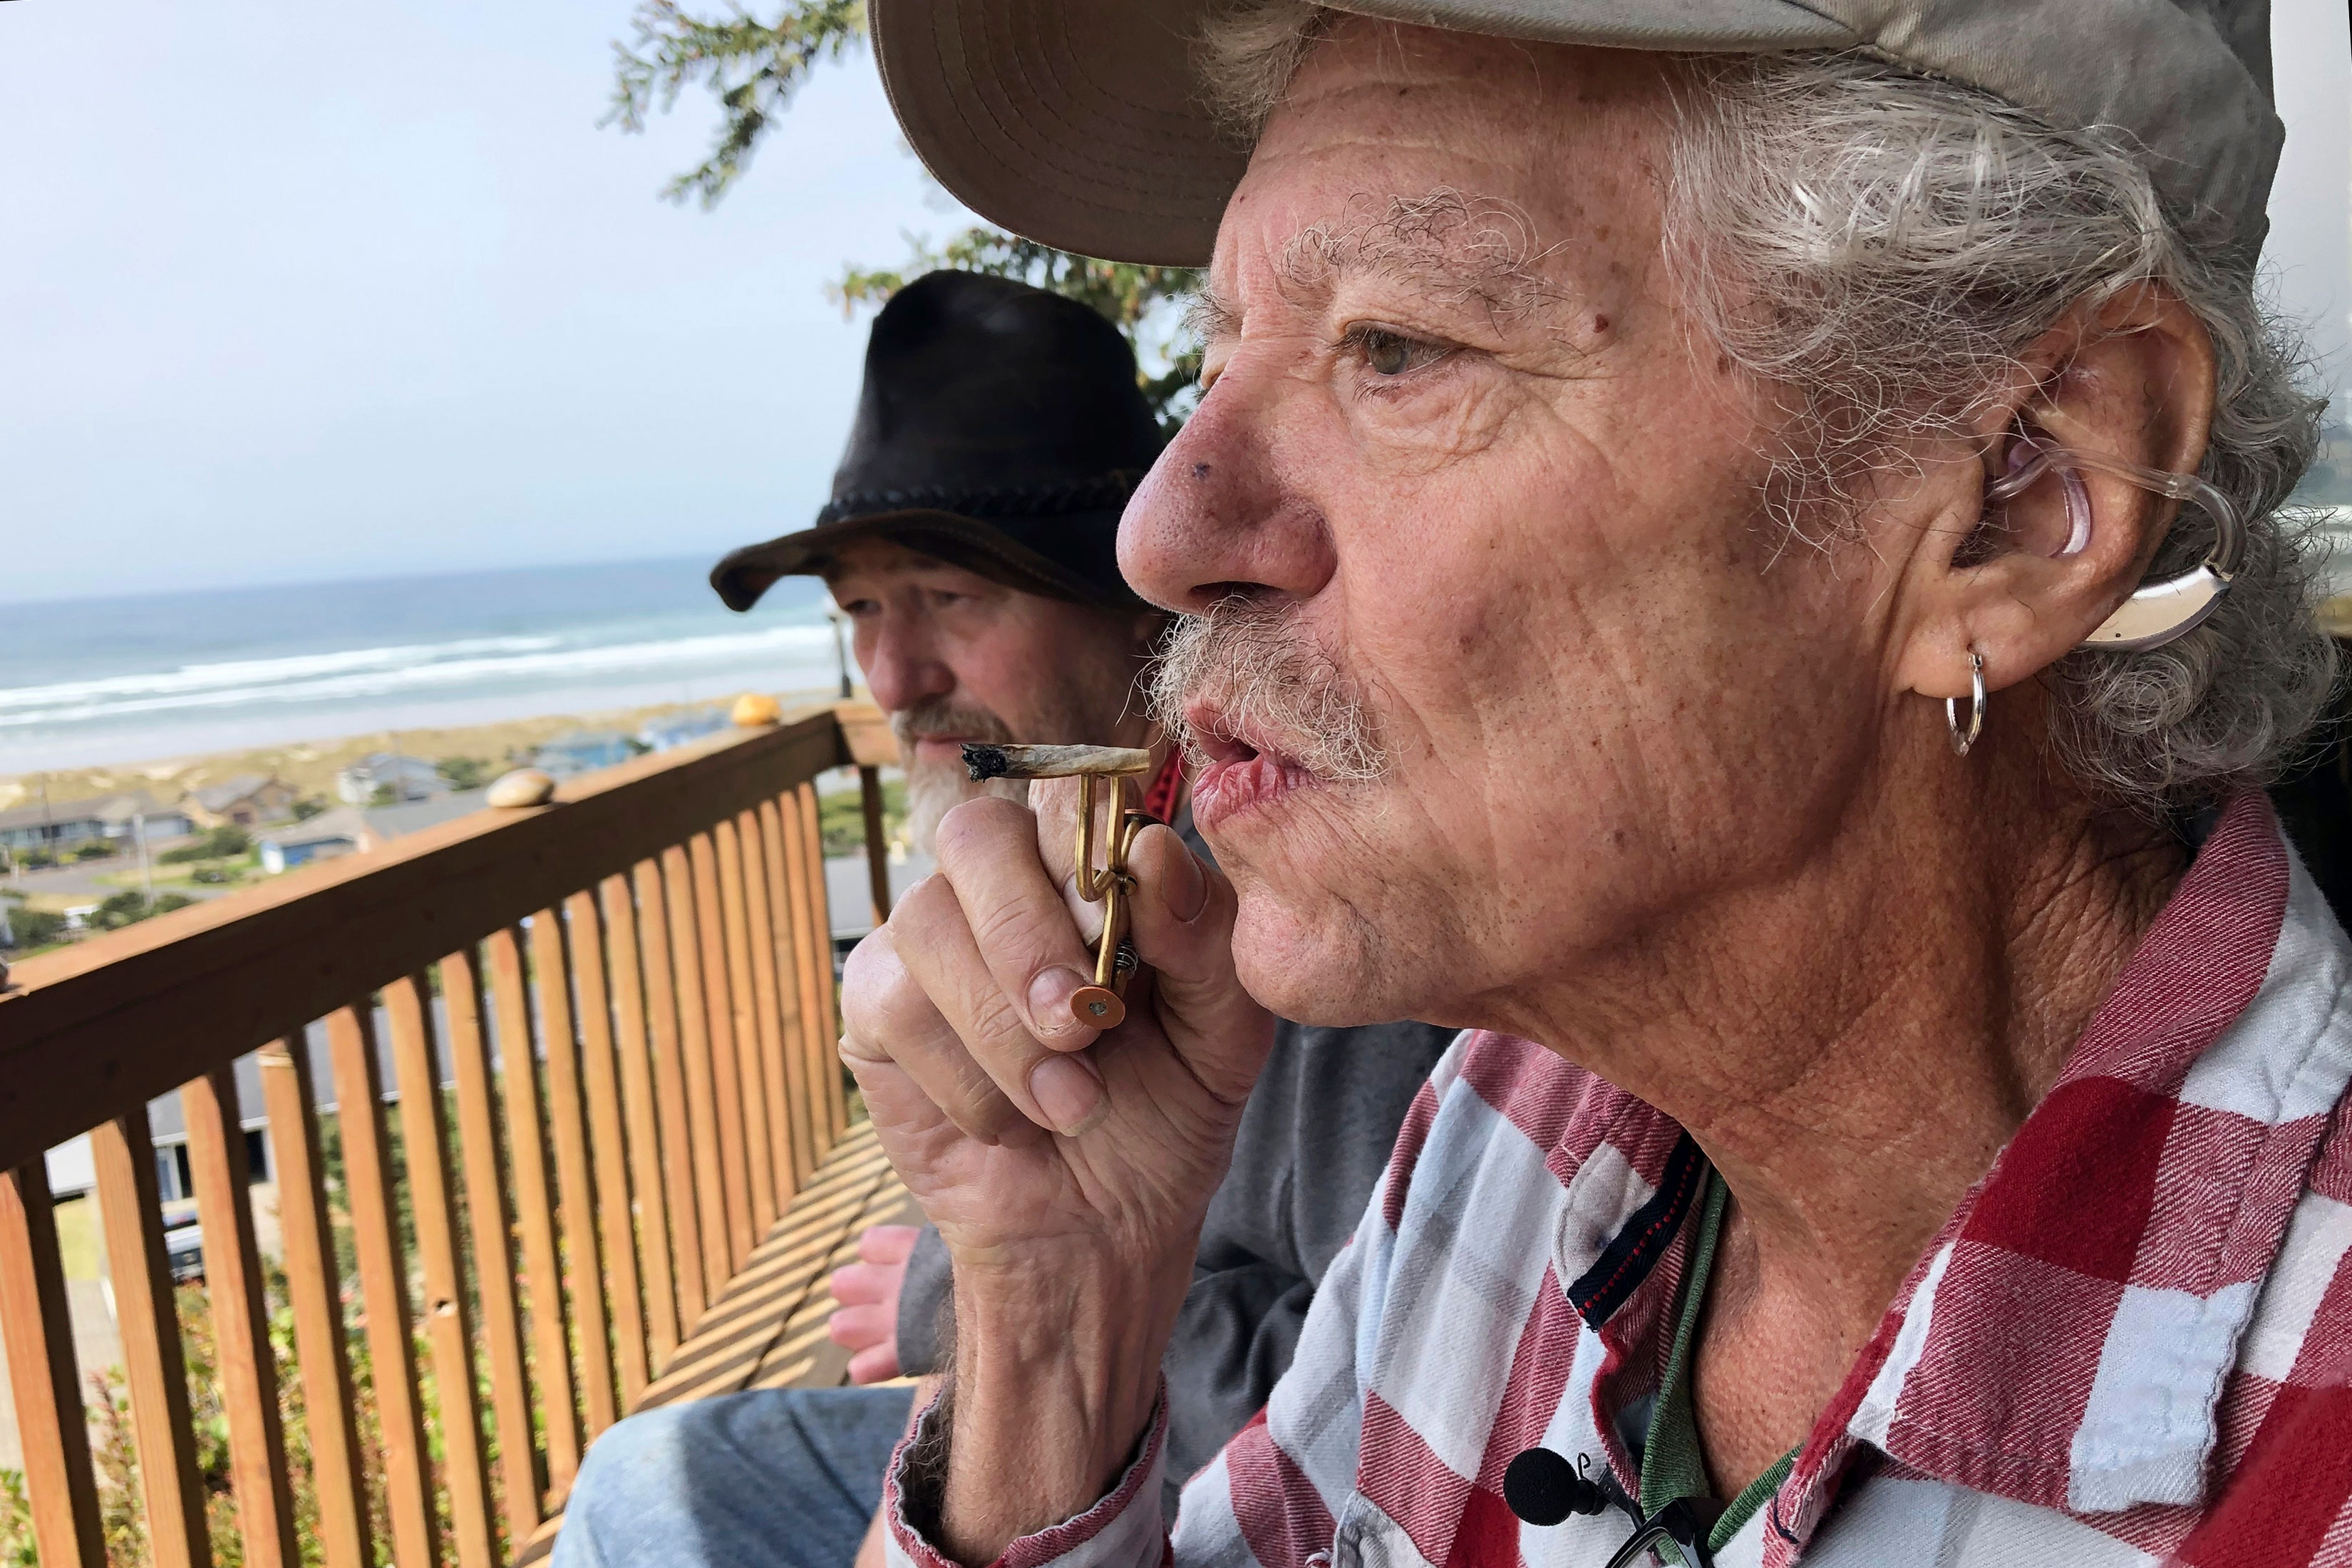 <p>Two-time cancer survivor and medical marijuana cardholder Bill Blazina, 73, smokes a marijuana joint on the deck of his neighbor's home in Waldport, Ore., April 25, 2019.</p>